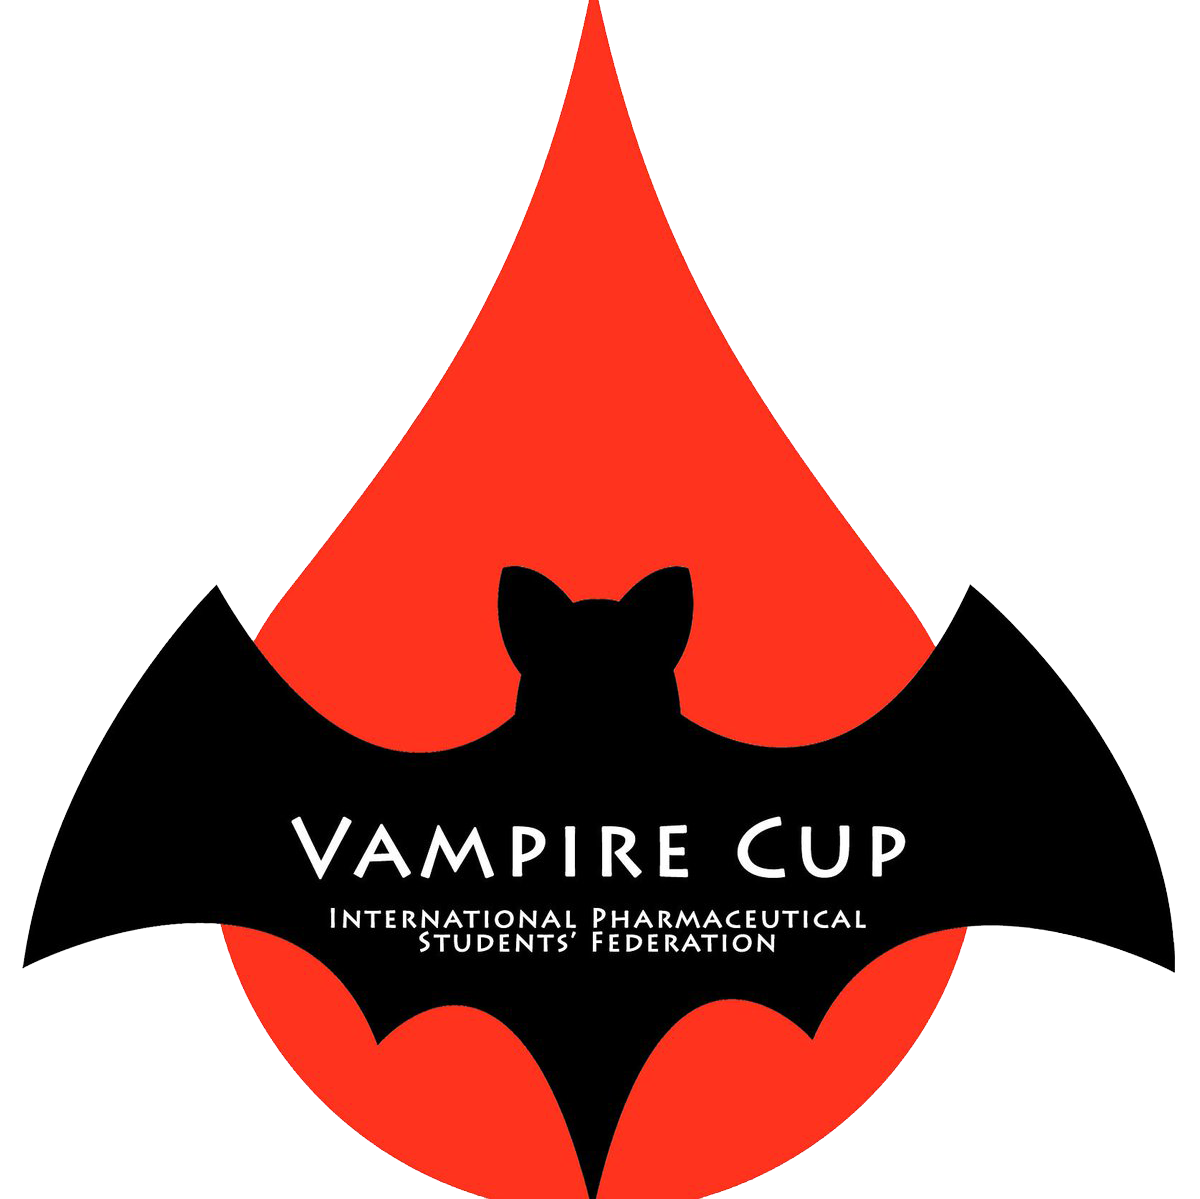 Vampire Cup